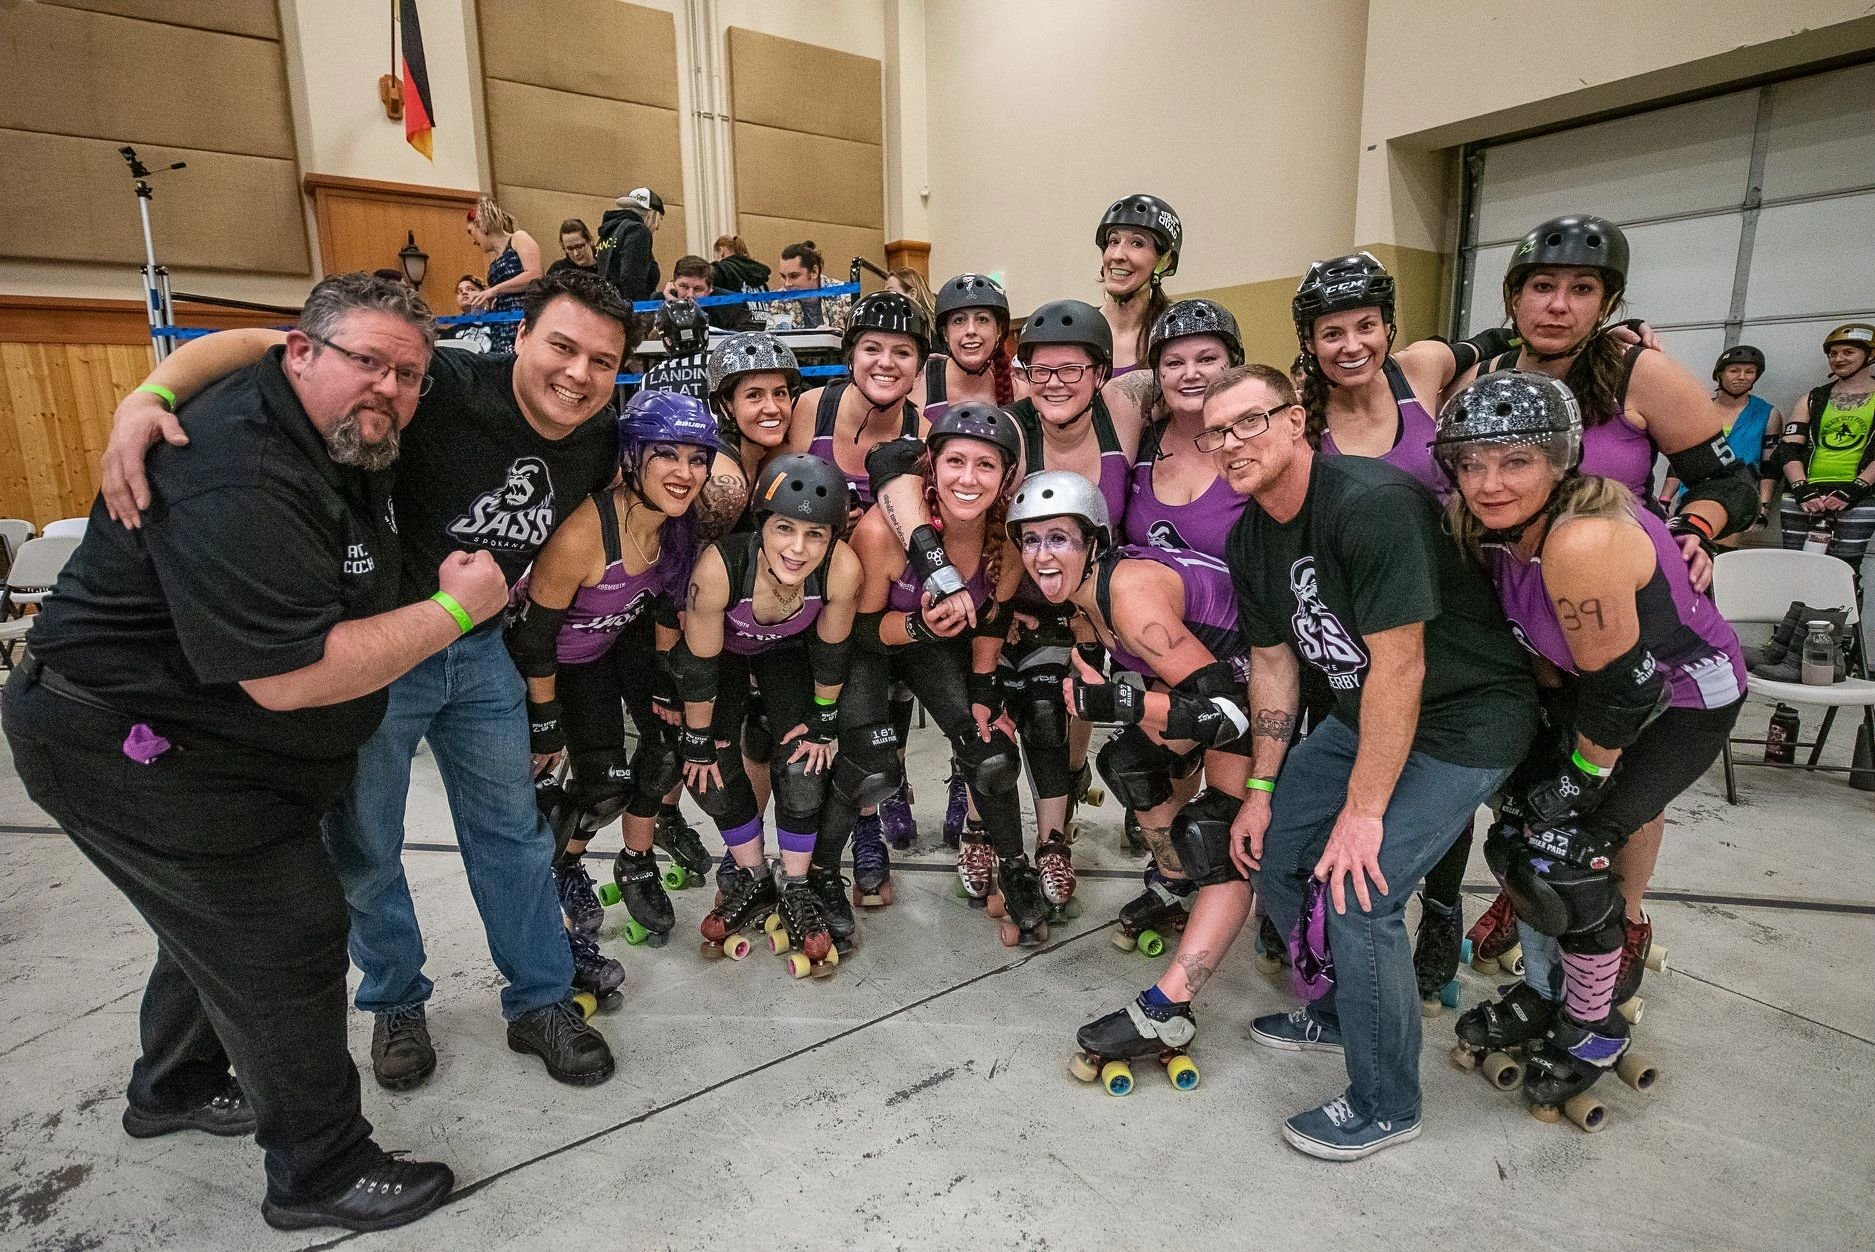 The SASS celebrate a victory at 2019 Bruisefest